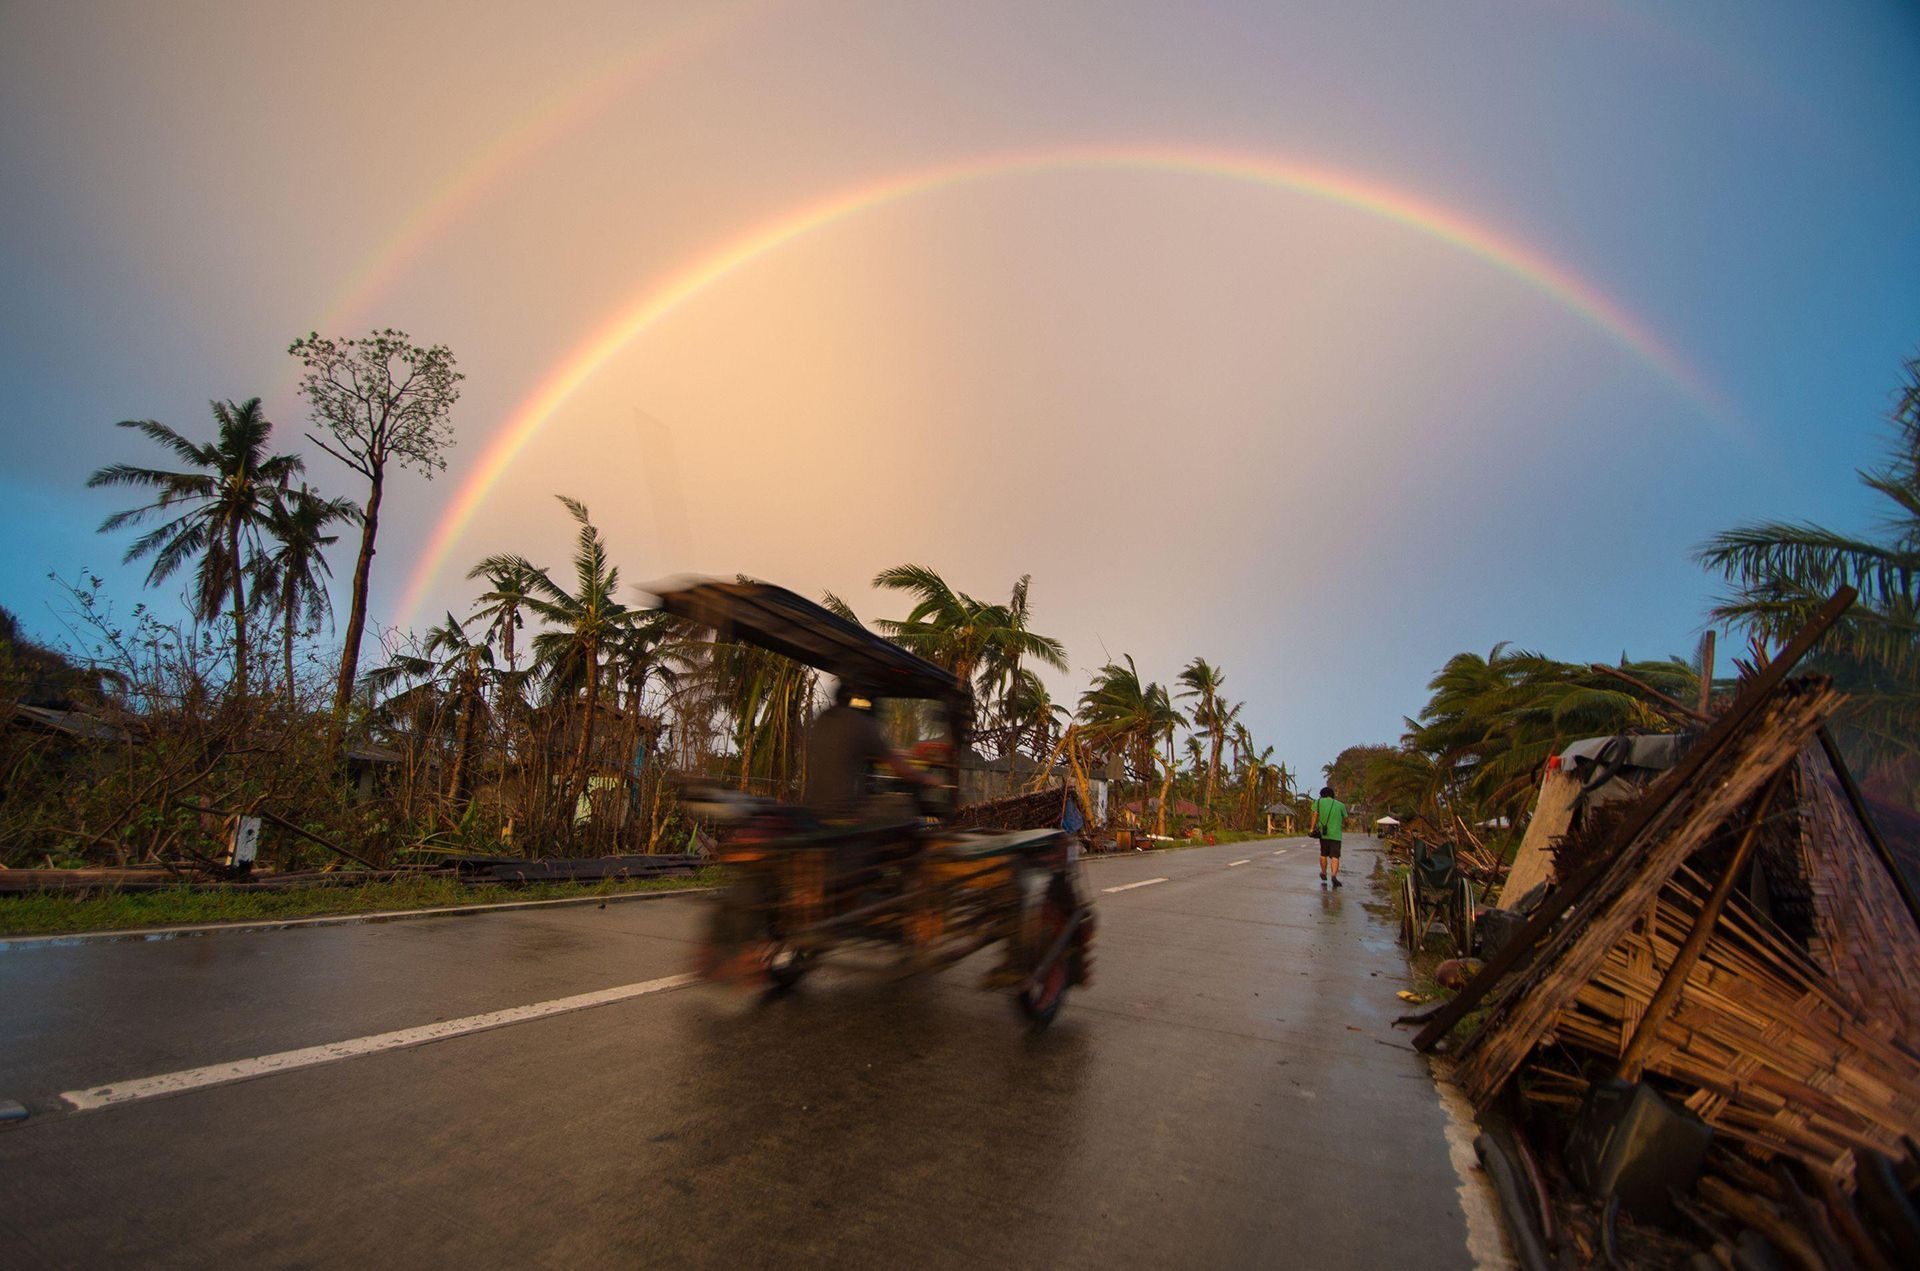 Photograph by Richard Balonglong, National Geographic Your Shot